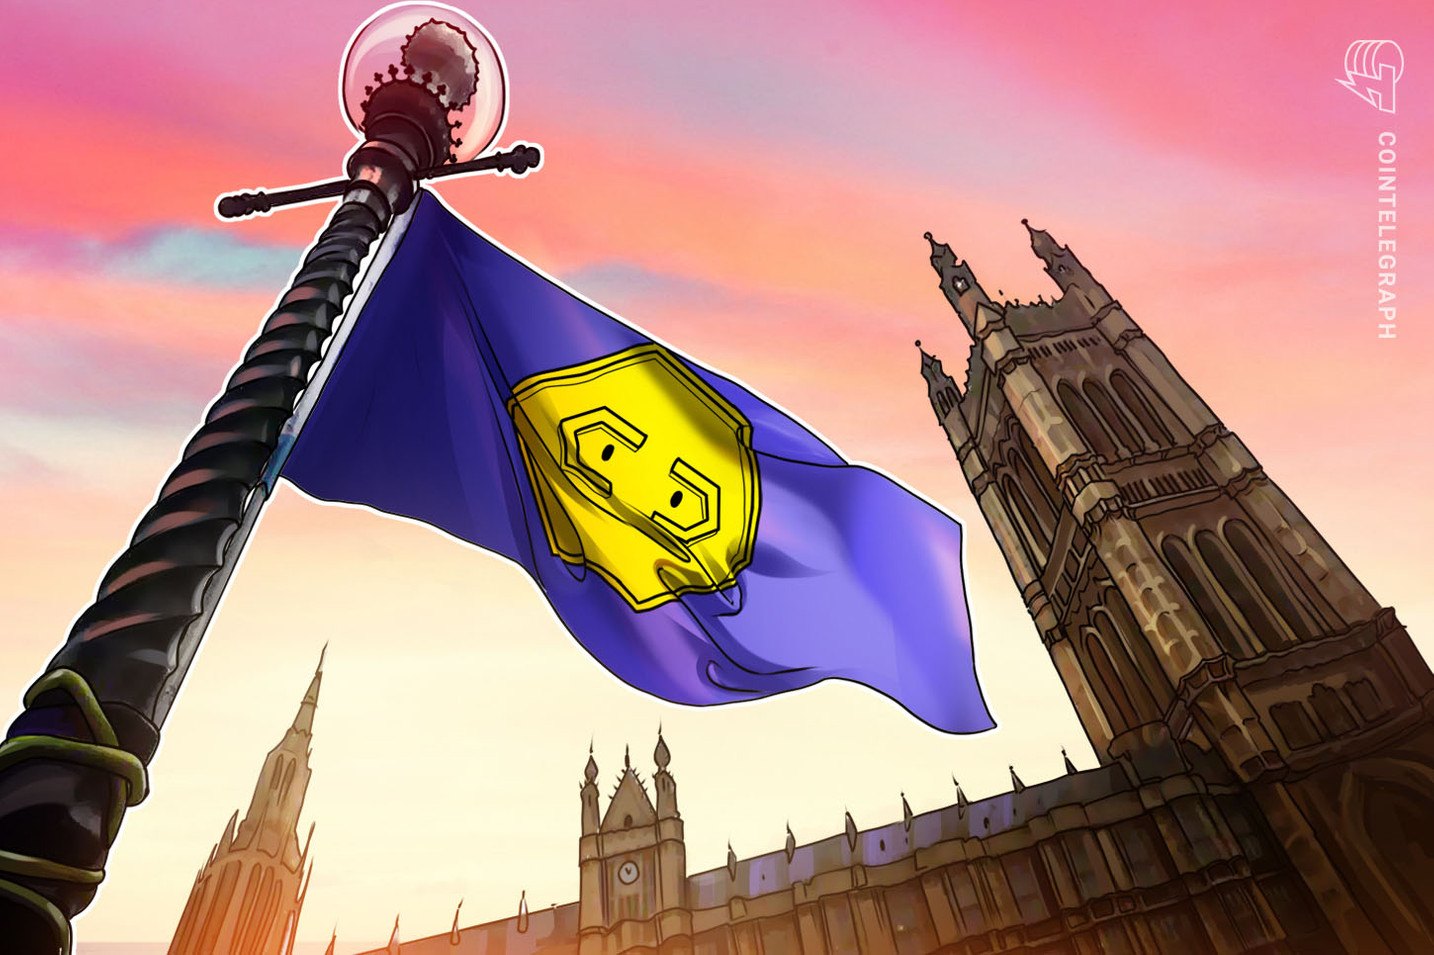 UK's NatWest bank limits transactions to crypto exchanges